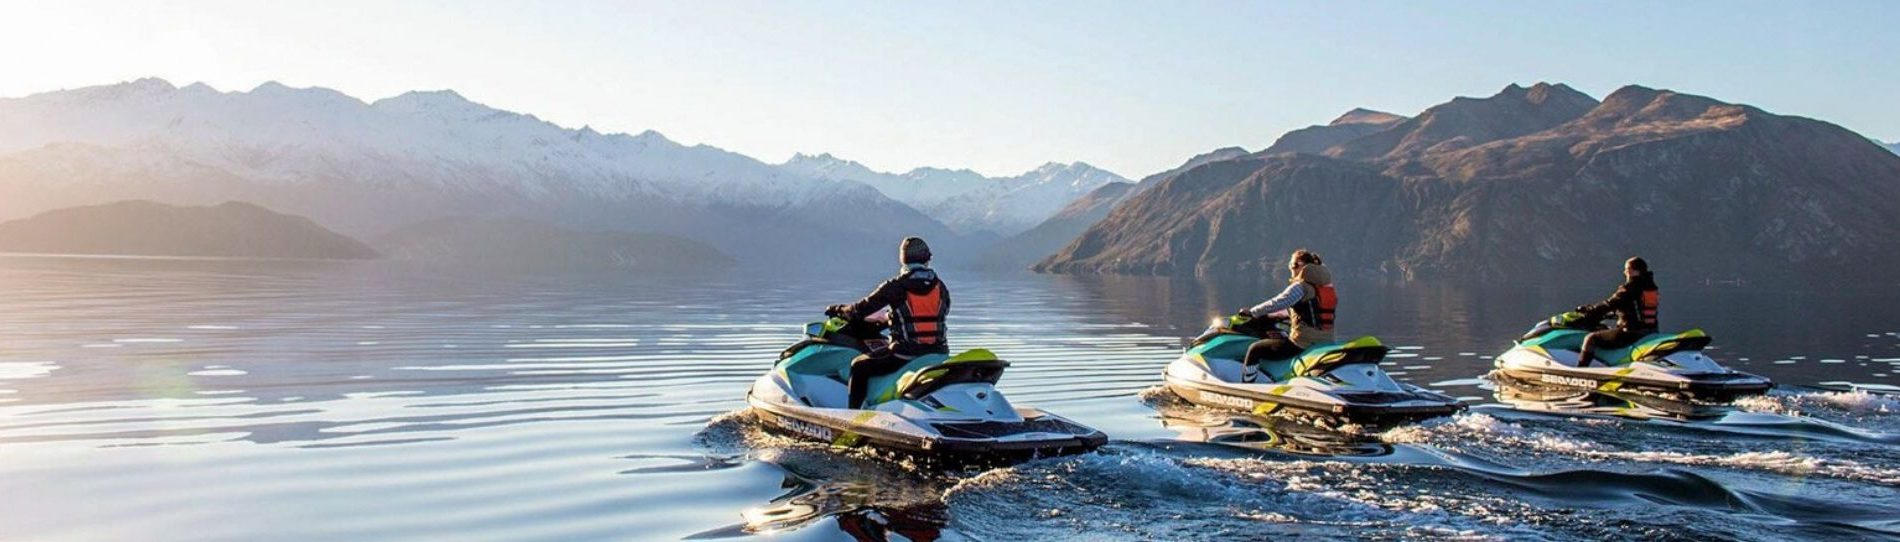 jet ski tours for stag weekend wanaka